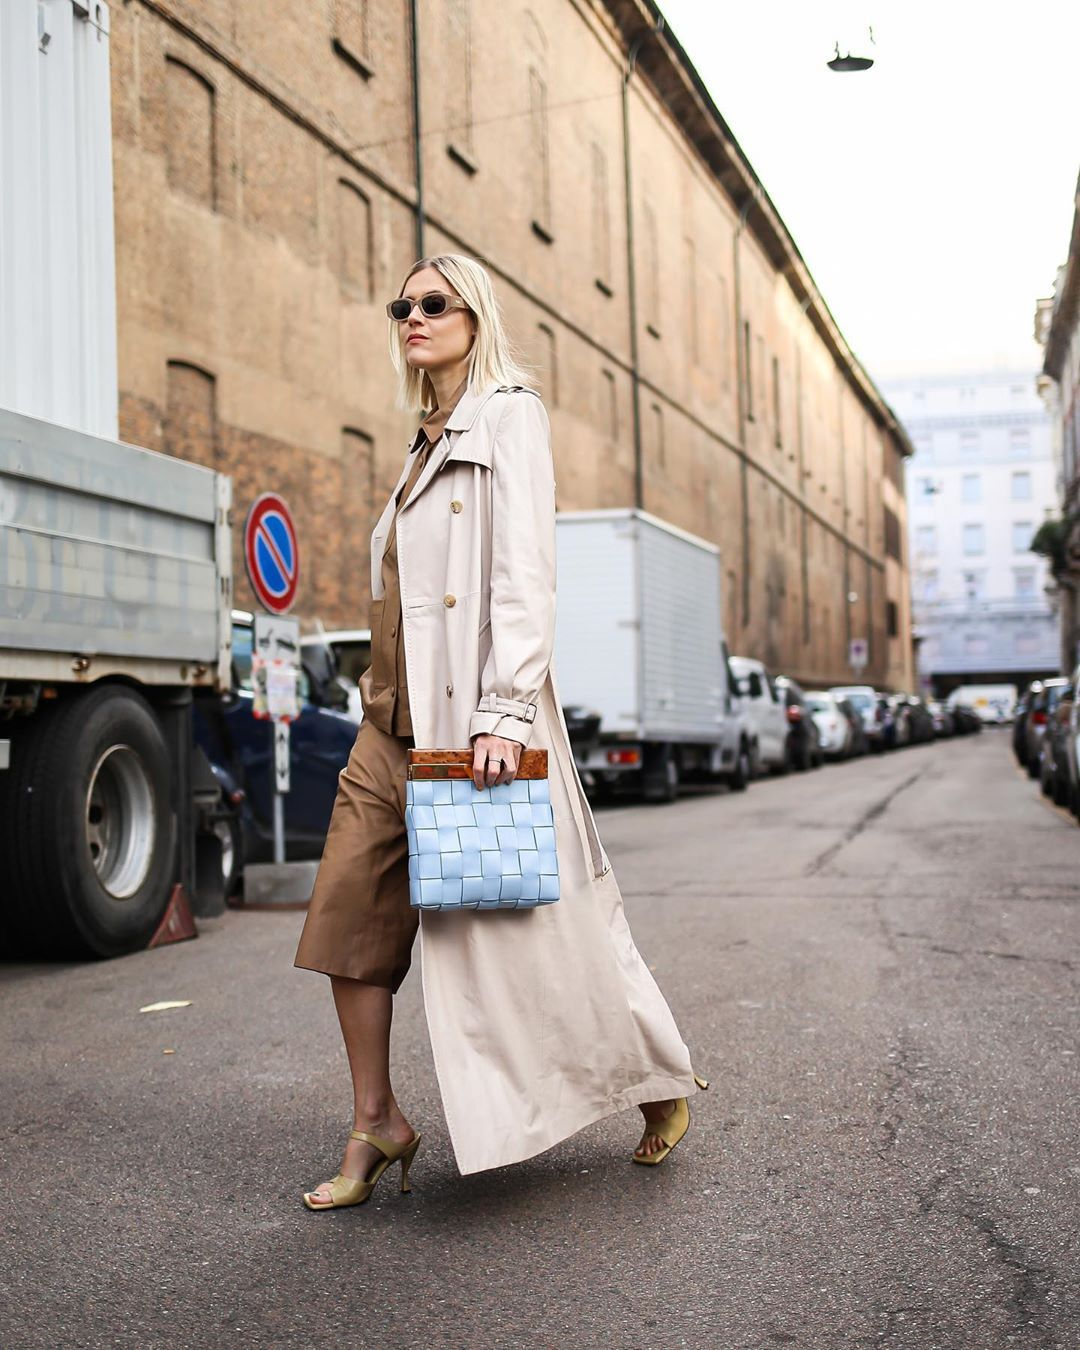 linda-tol-bottega-veneta-tapioca-leather-sandals-street-style-milan